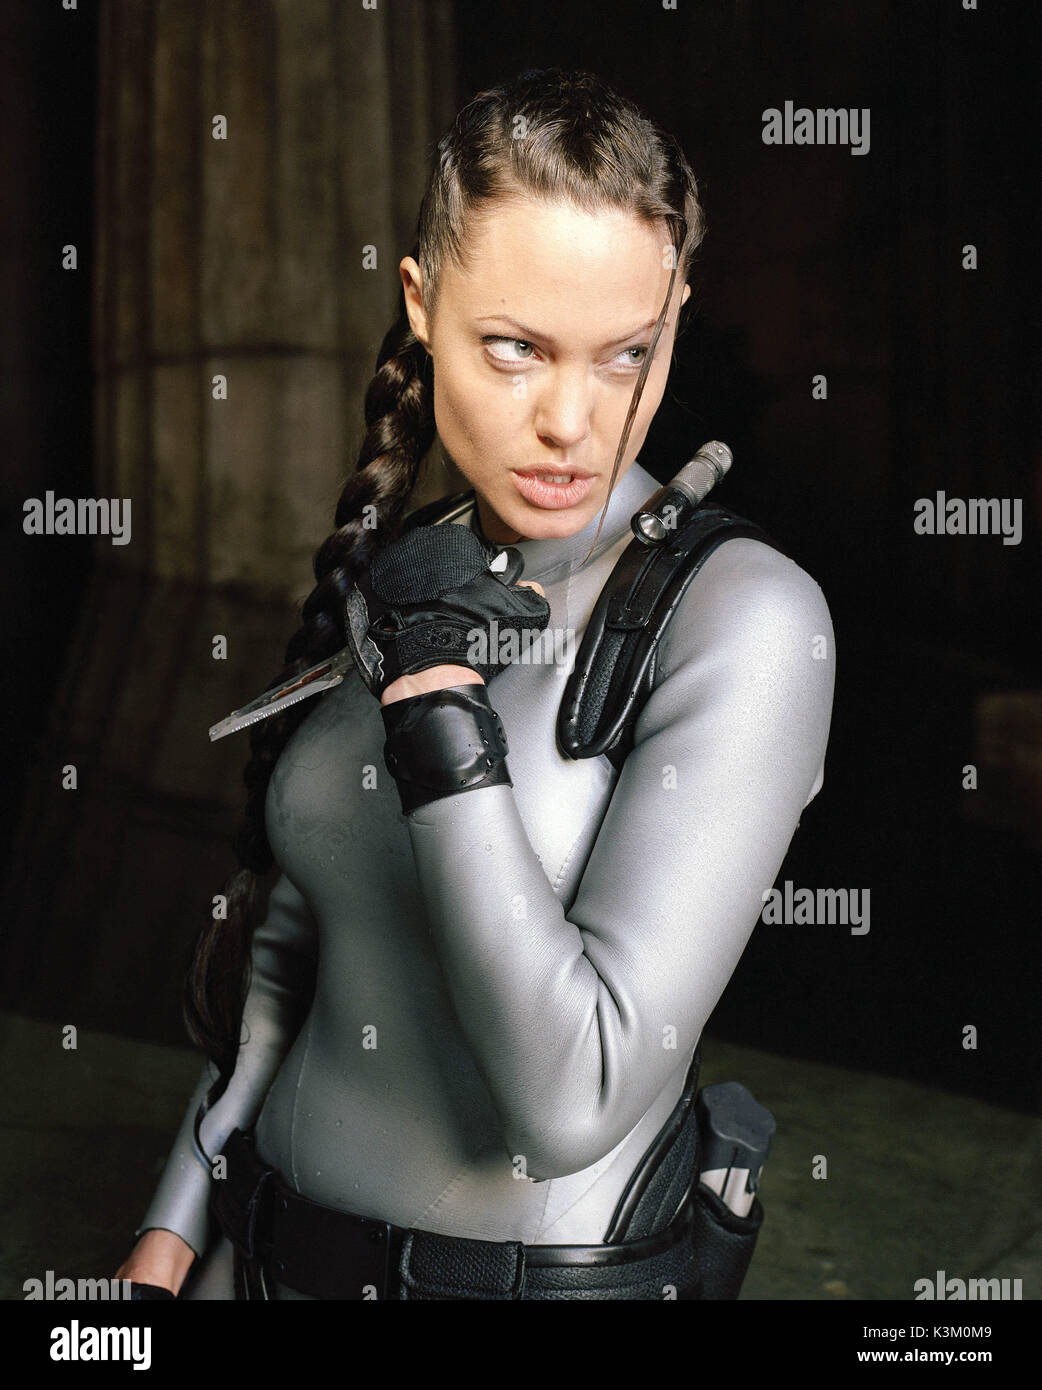 Lara Croft Tomb Raider The Cradle Of Life Angelina Jolie As Lara Stock Photo Alamy